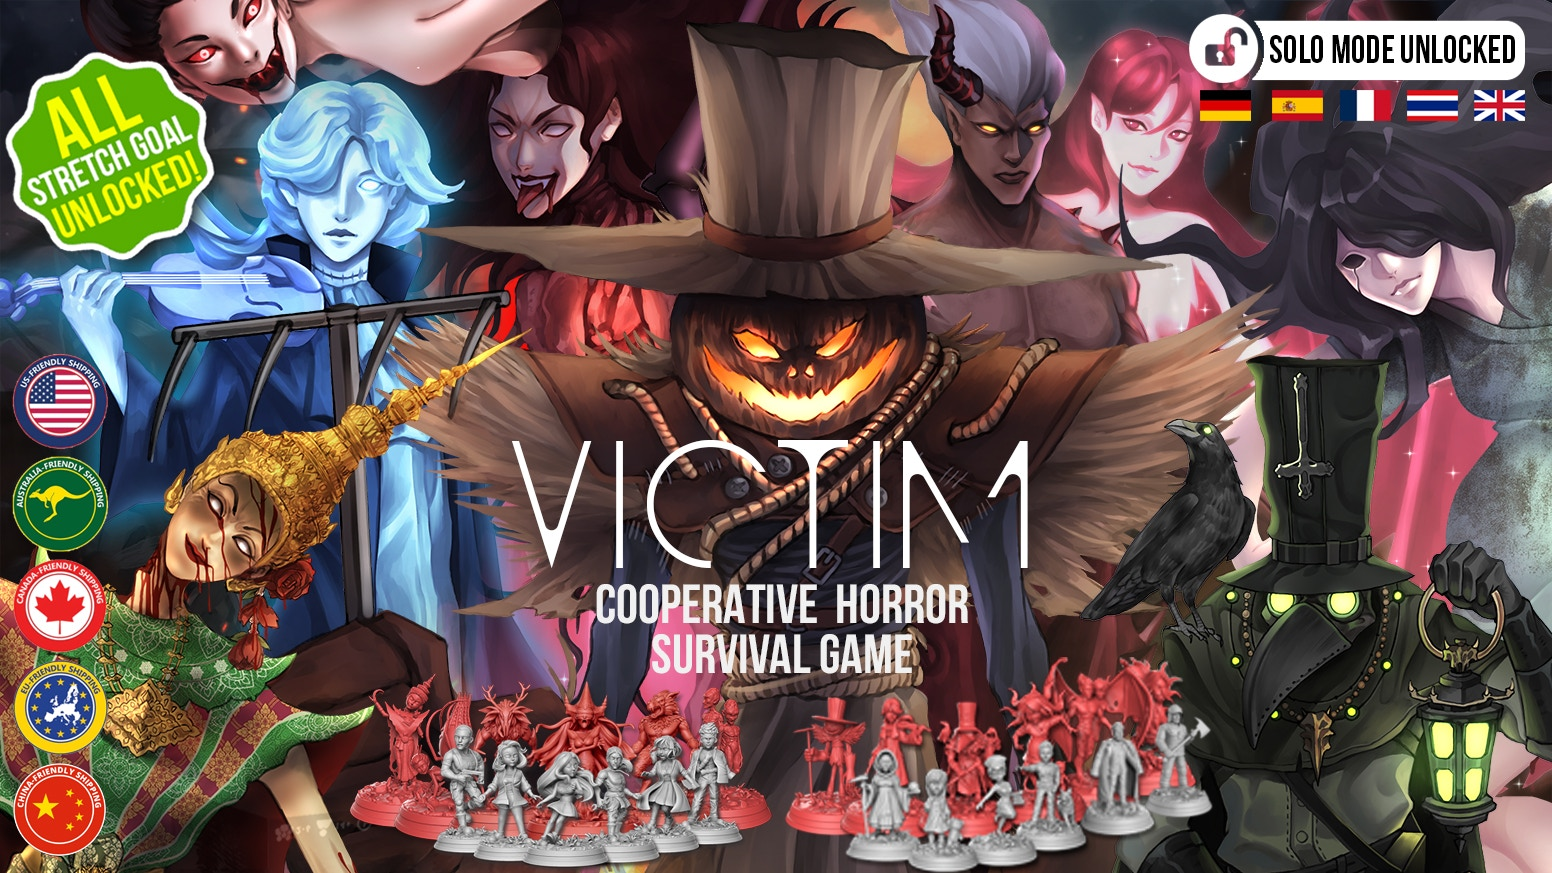 A cooperative horror survival game for 2-6 players. Find a way to survive from the Evil that will possess someone in your group!